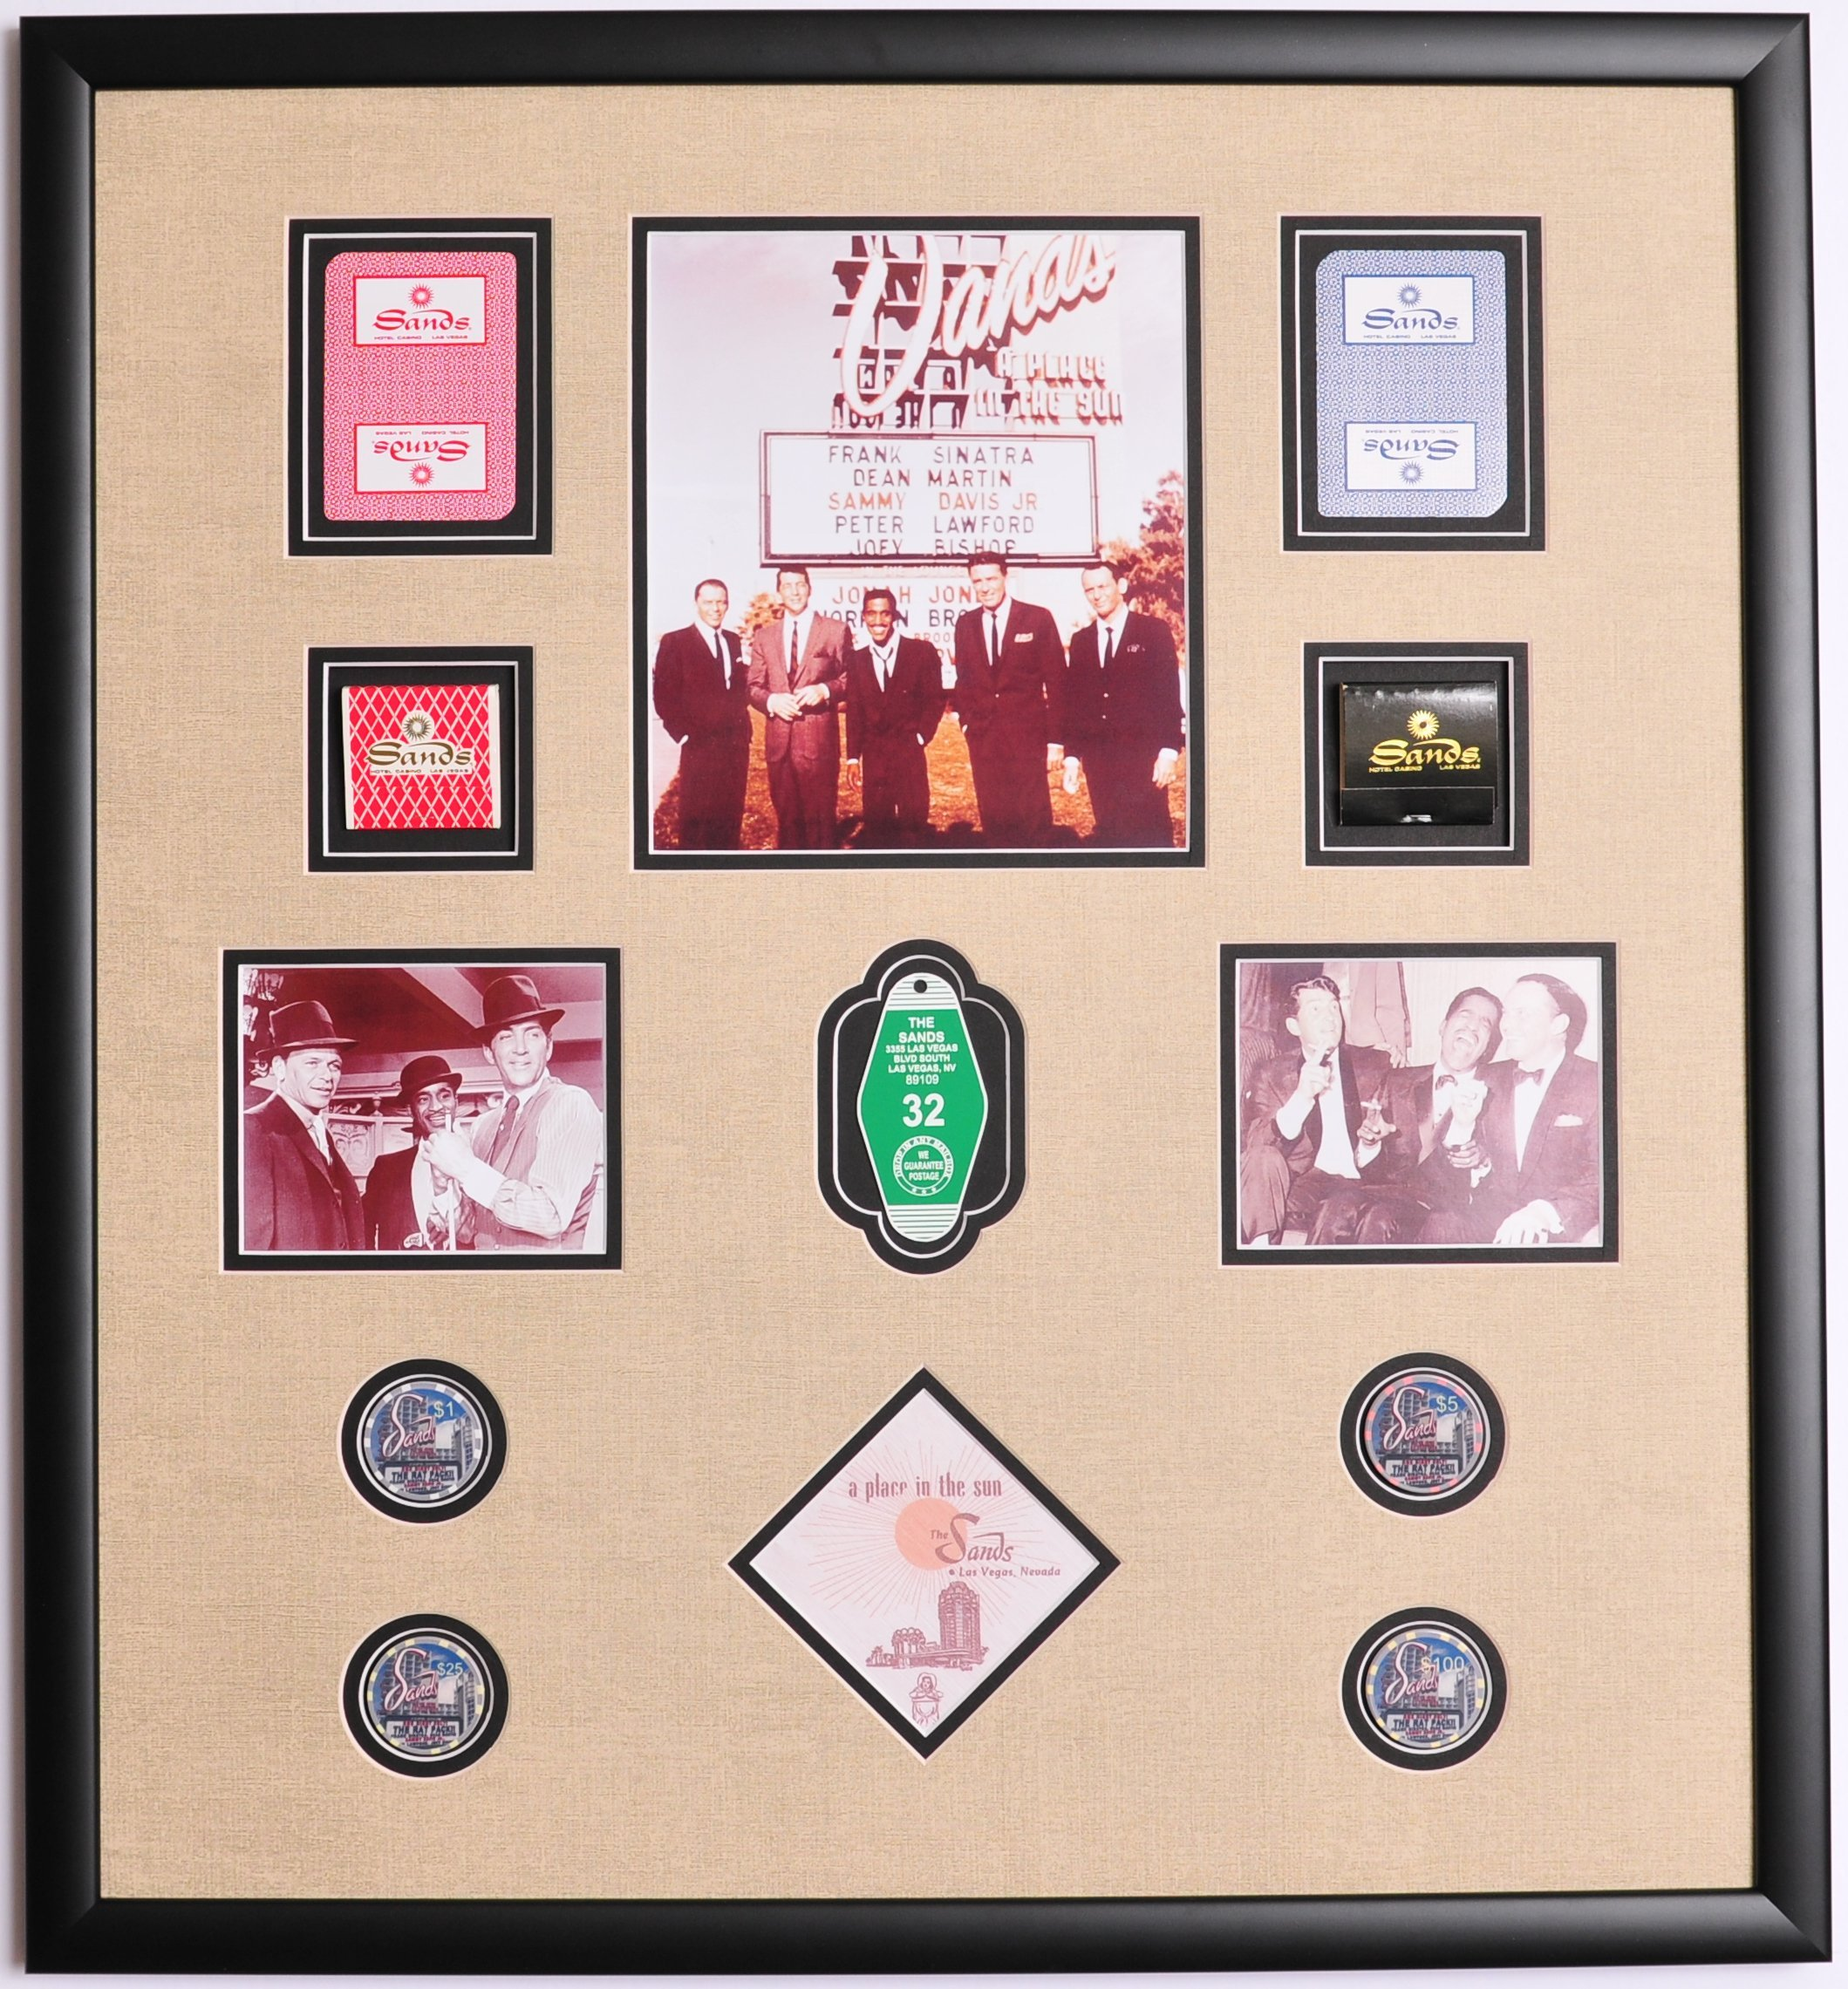 RAT Pack Sands Hotel Photo Framed w/ Cards , Poker Chips, Casino Napkin, Room Key Fob and Matchbooks